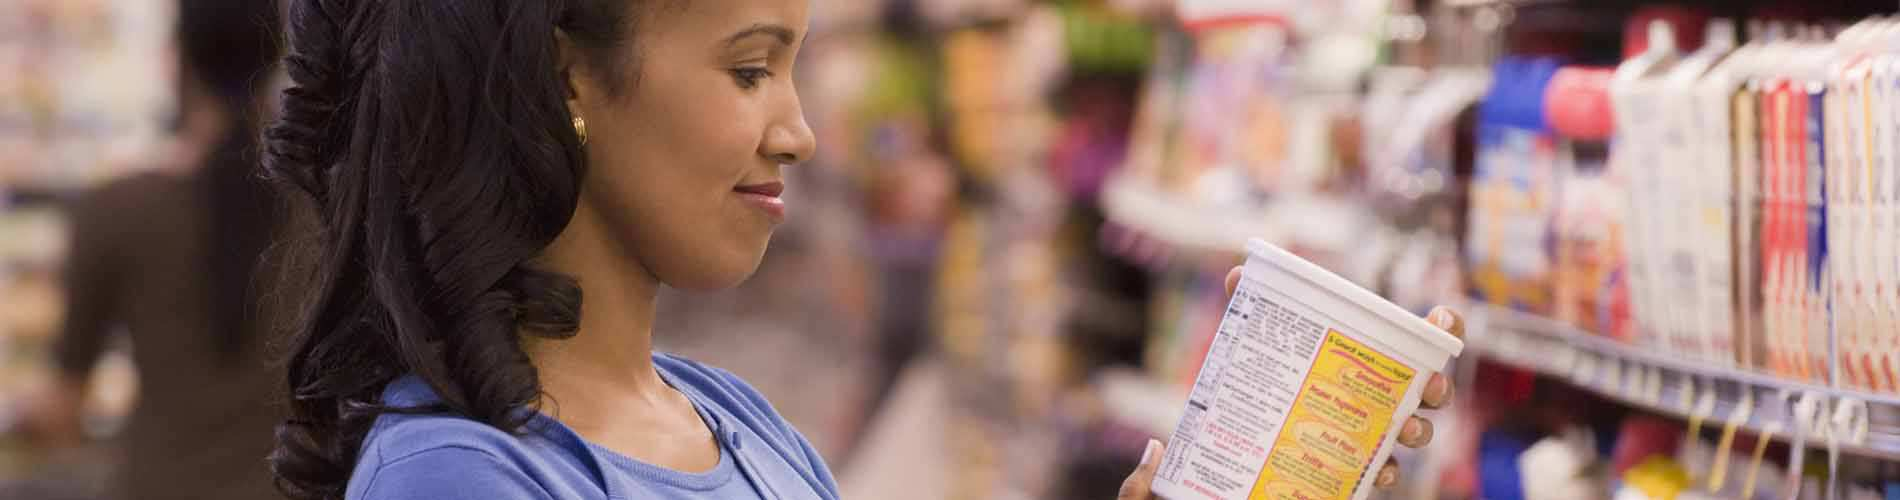 woman looking at items on grocery store shelves